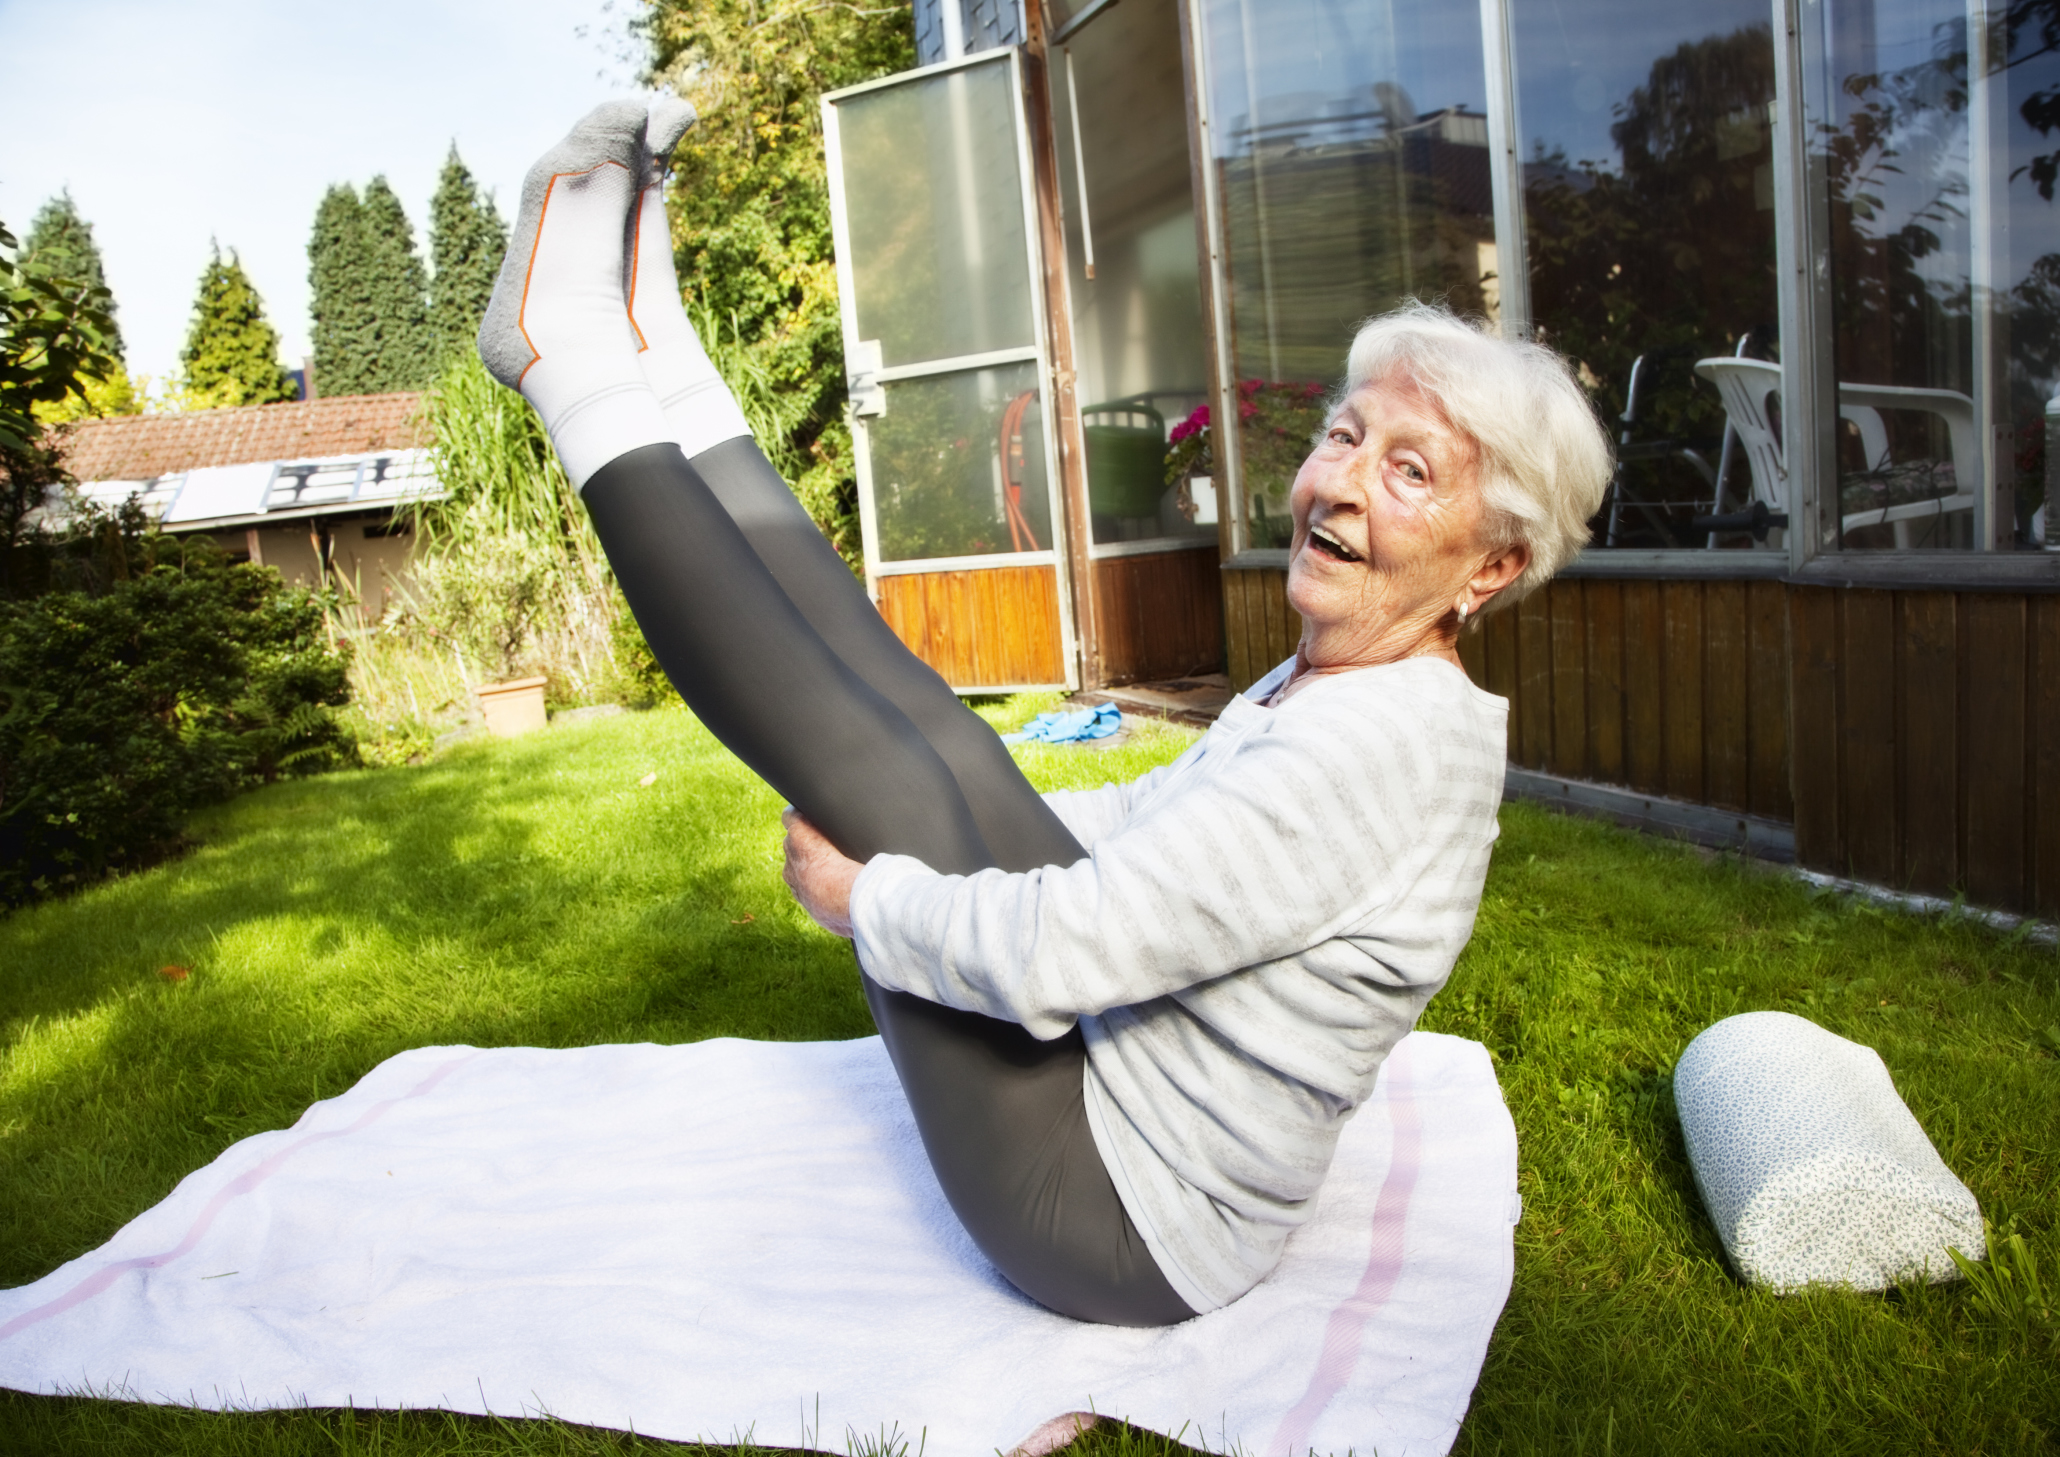 Image of an elderly woman doing yoga